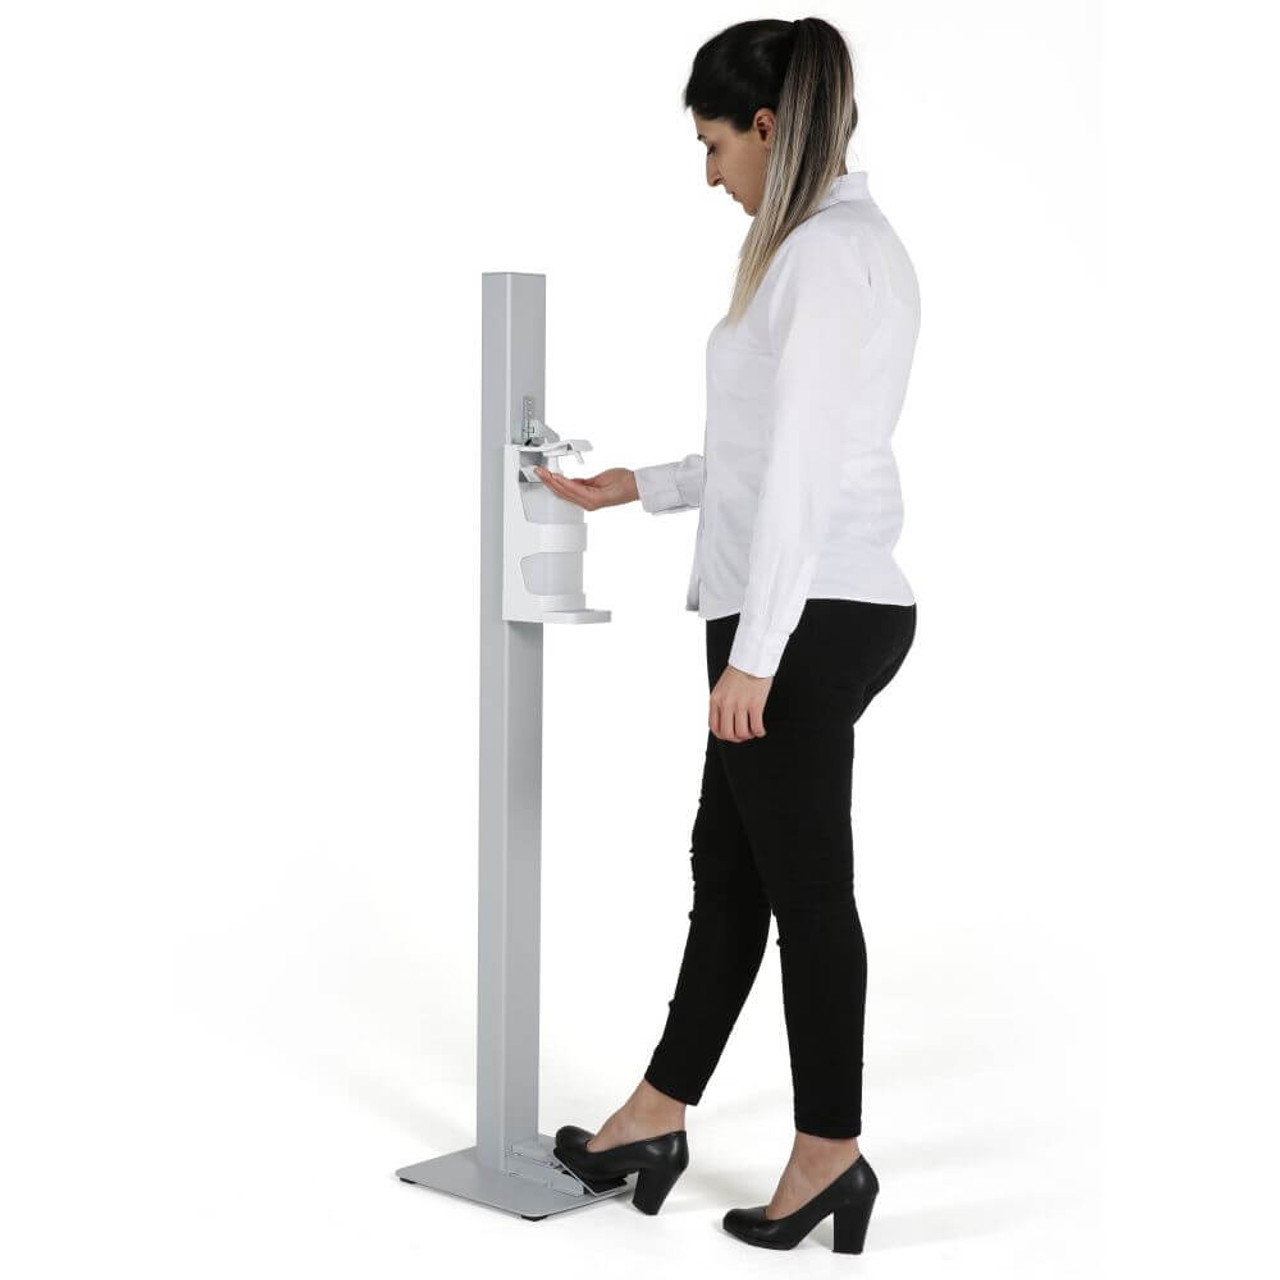 Touchless Hand Sanitizer Dispenser - Grey - Manual Foot Operated